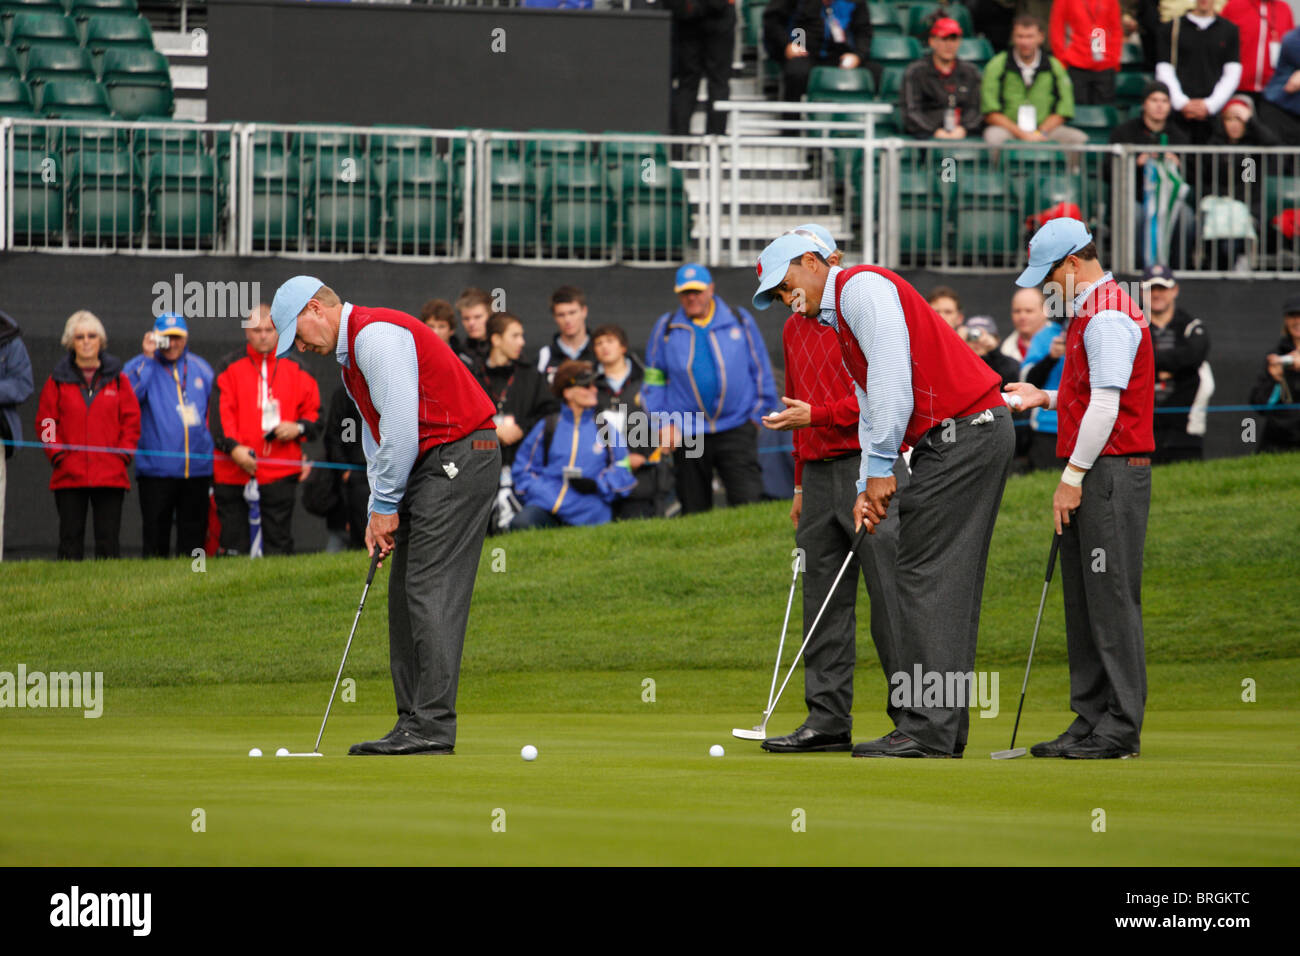 American Golfers on the first practice day of the 2010 Ryder Cup, Celtic Manor, Newport, Wales - Stock Image